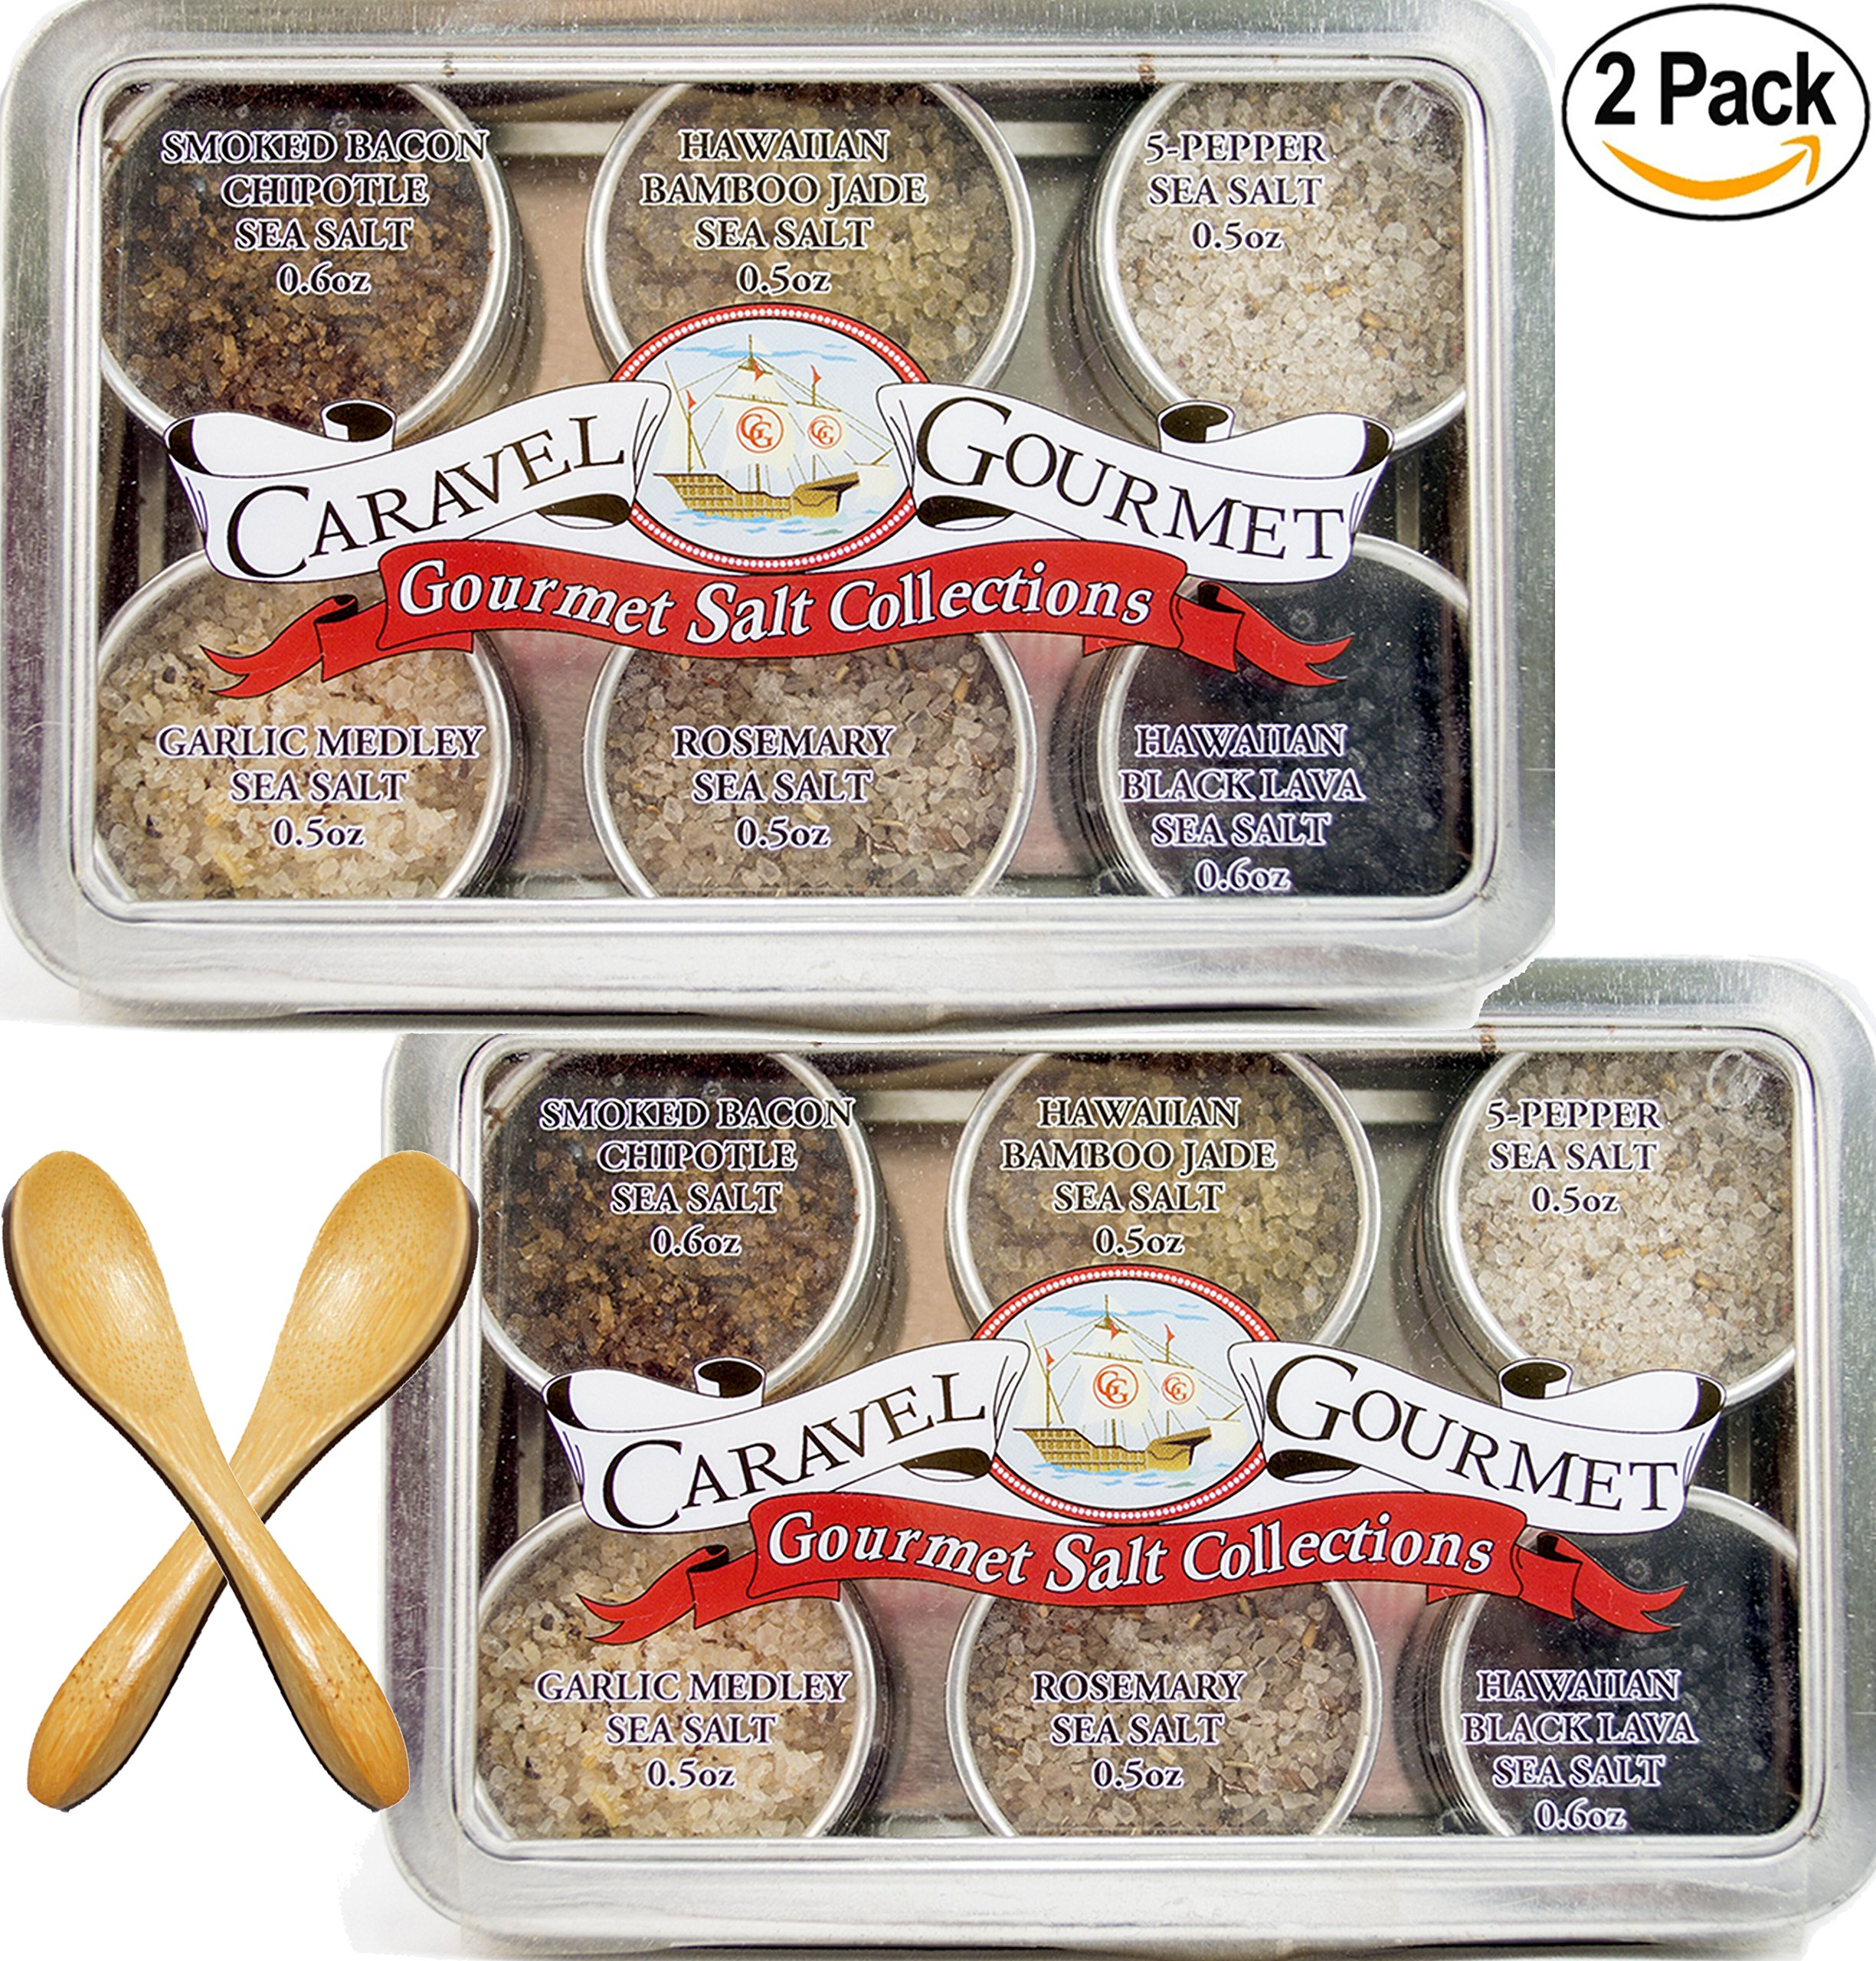 The #1 Gourmet Sea Salt Sampler - 6 Delicious Salts in Reusable Tins with a Bamboo Spoon, in a Variety of Flavor Profiles - Perfect Gift for Everyone (Infused, Two Pack Sampler)